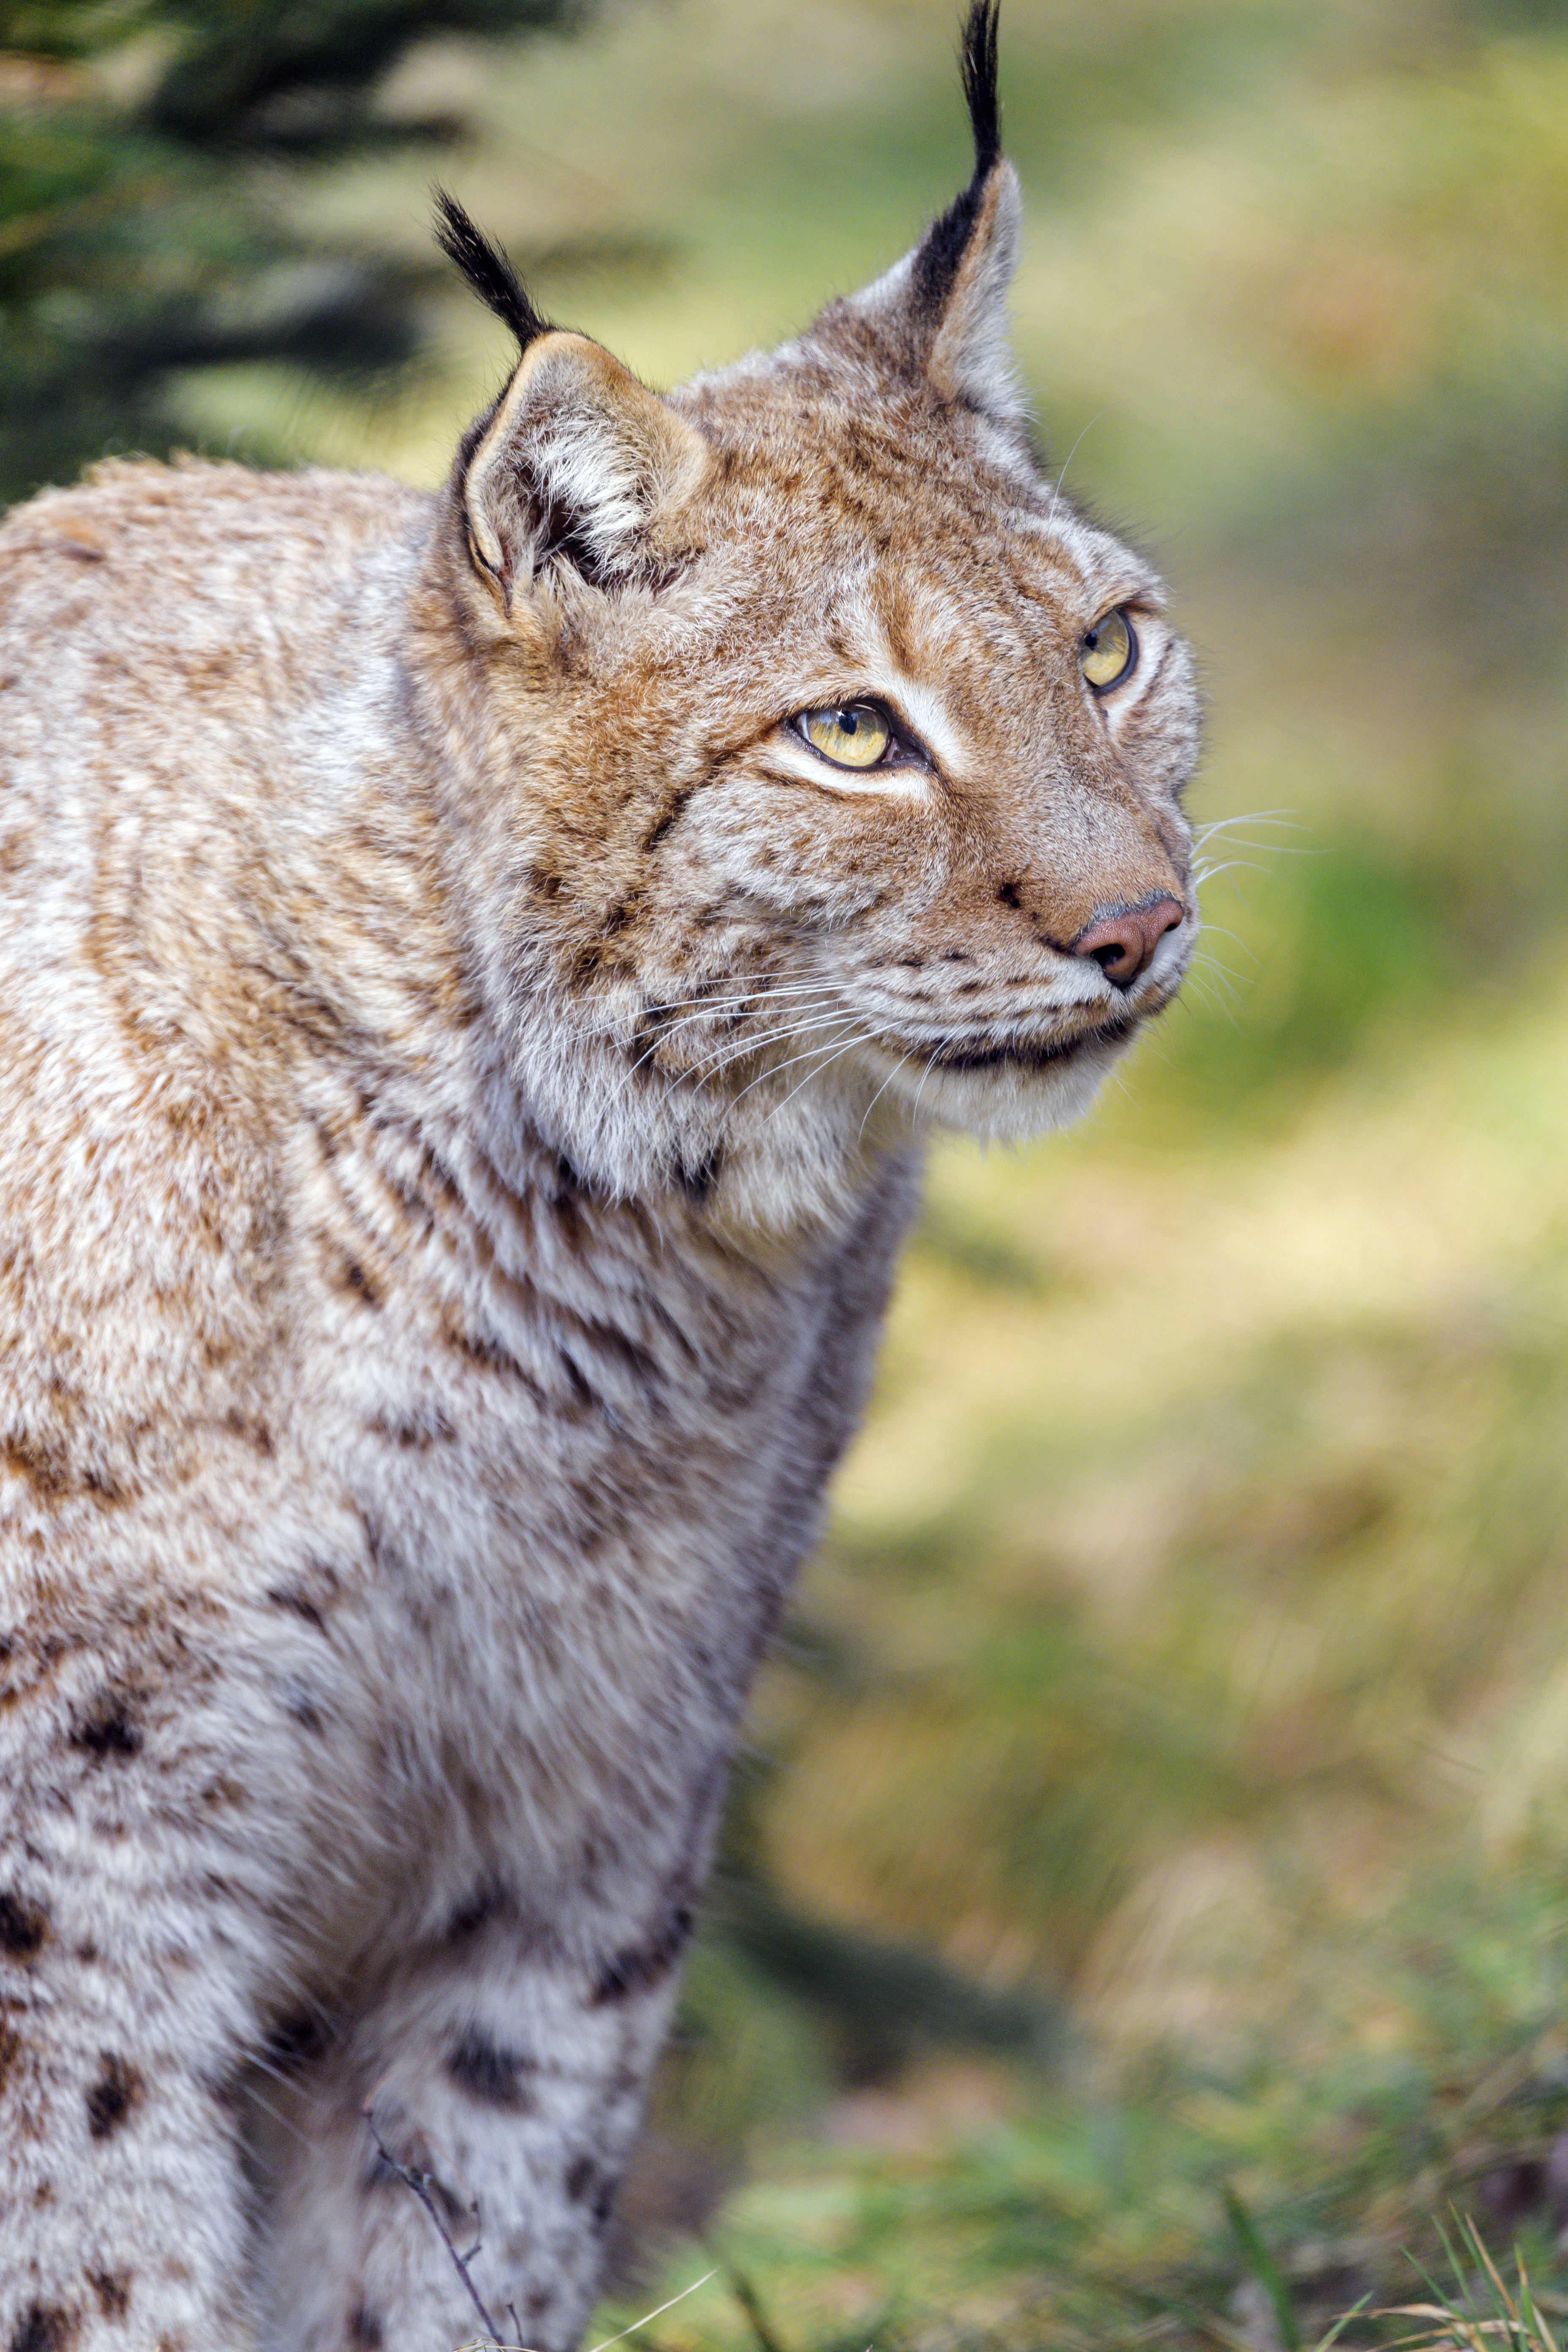 110819 download wallpaper Animals, Iris, Animal, Predator, Sight, Opinion, Big Cat screensavers and pictures for free